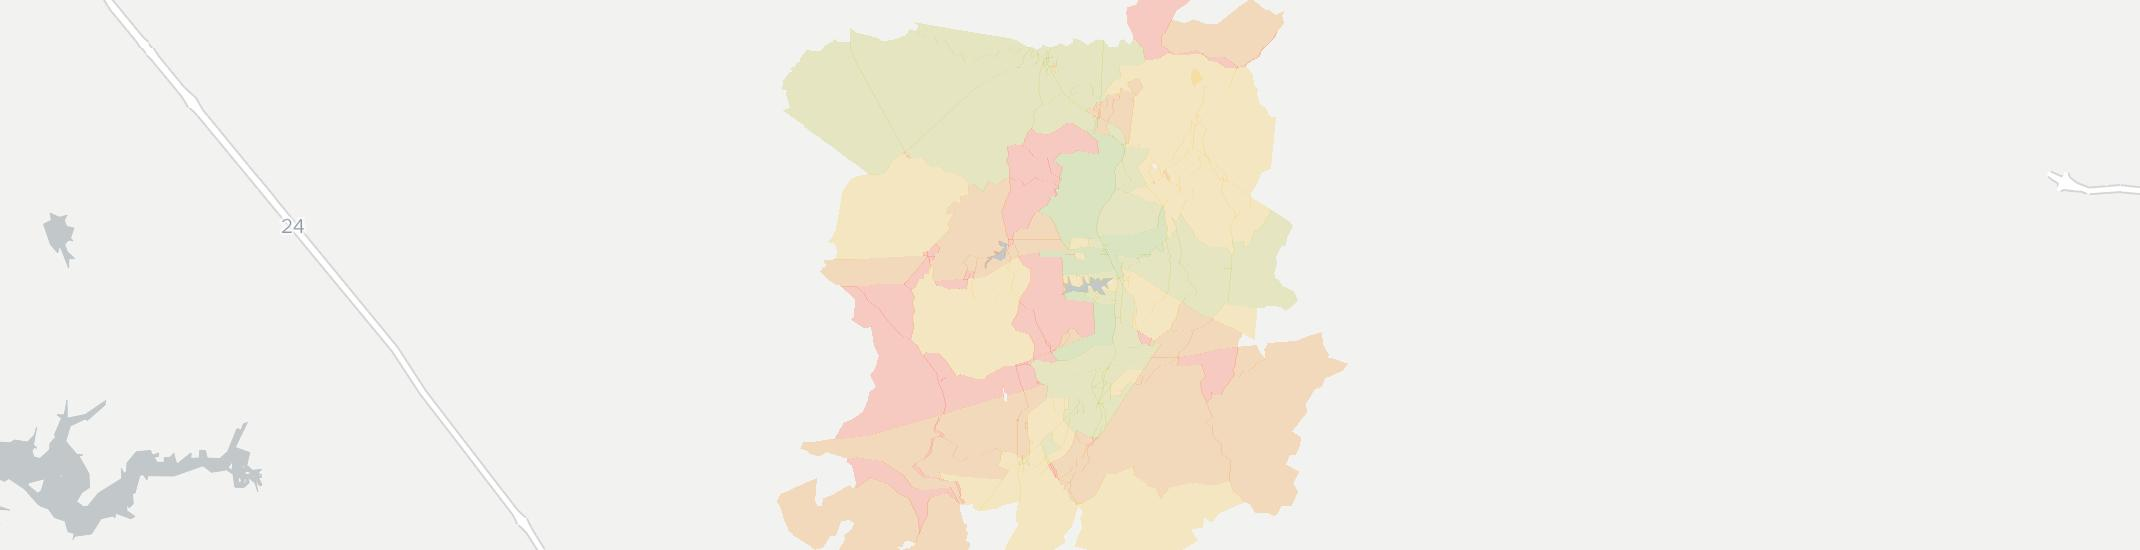 Coalmont Internet Competition Map. Click for interactive map.